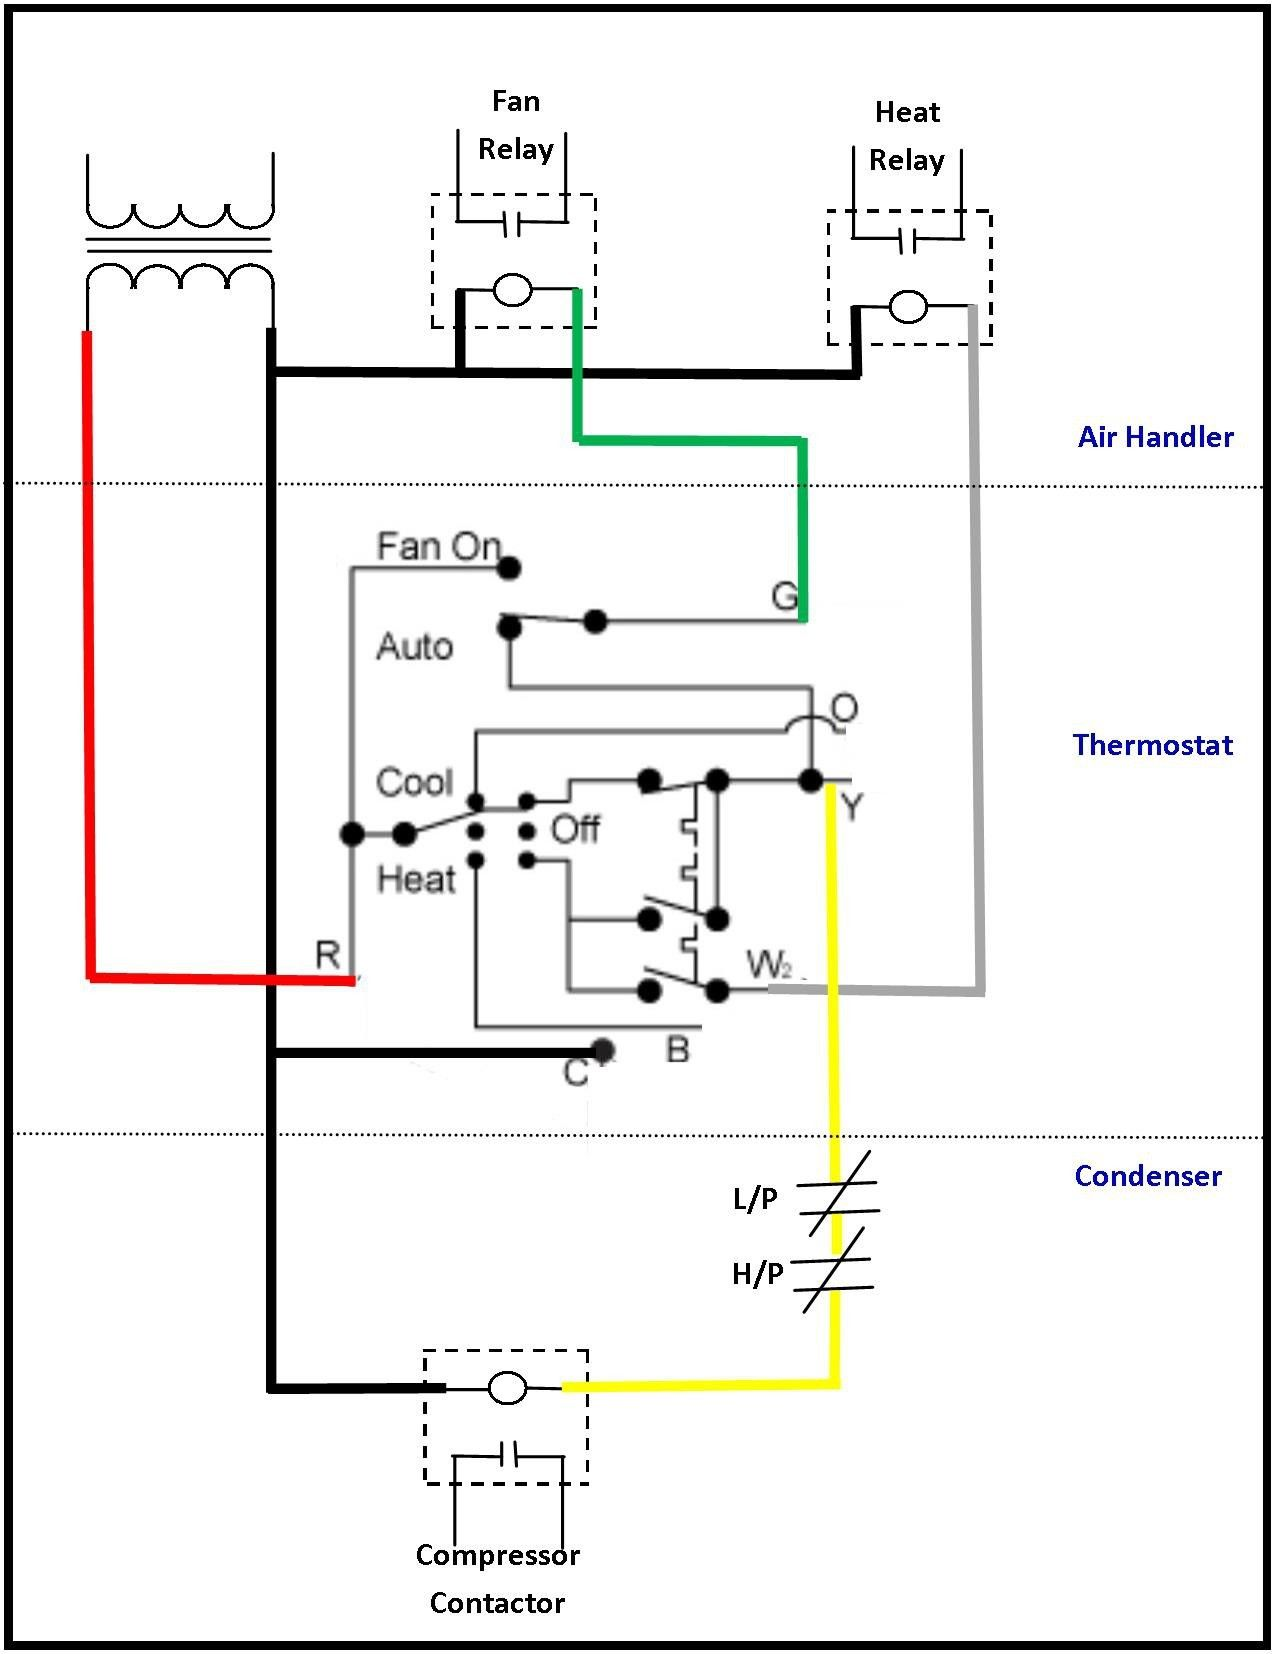 [SCHEMATICS_4NL]  Wiring Diagram For Ducane Air Conditioner - 2015 Jeep Wrangler Unlimited  Wiring for Wiring Diagram Schematics | Wiring Diagram For Ducane Air Conditioner |  | Wiring Diagram Schematics